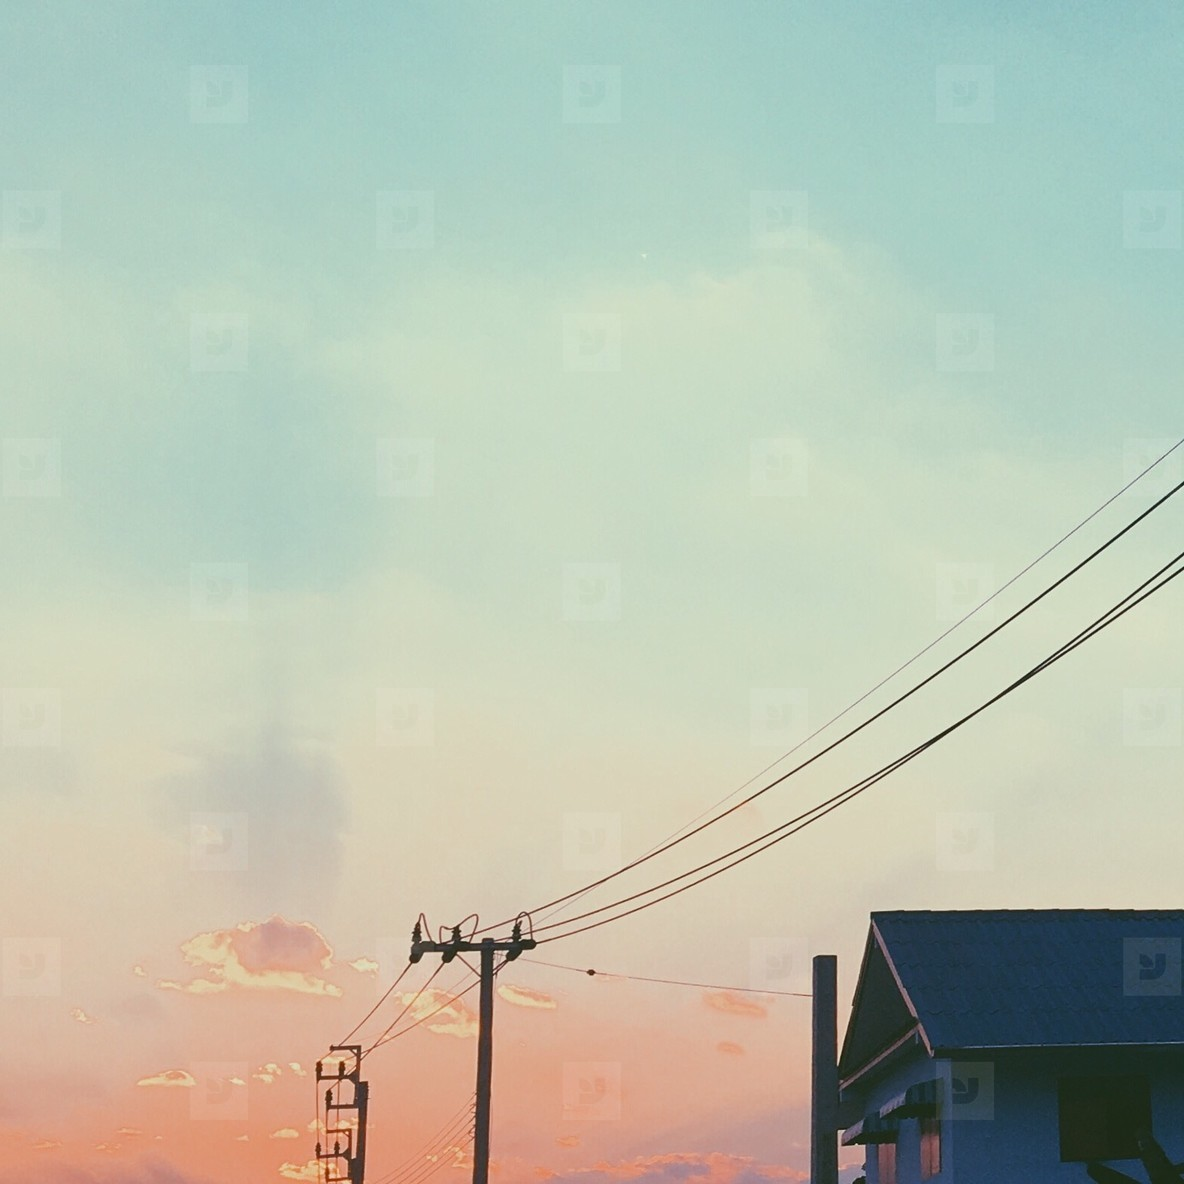 Electrical pole and house